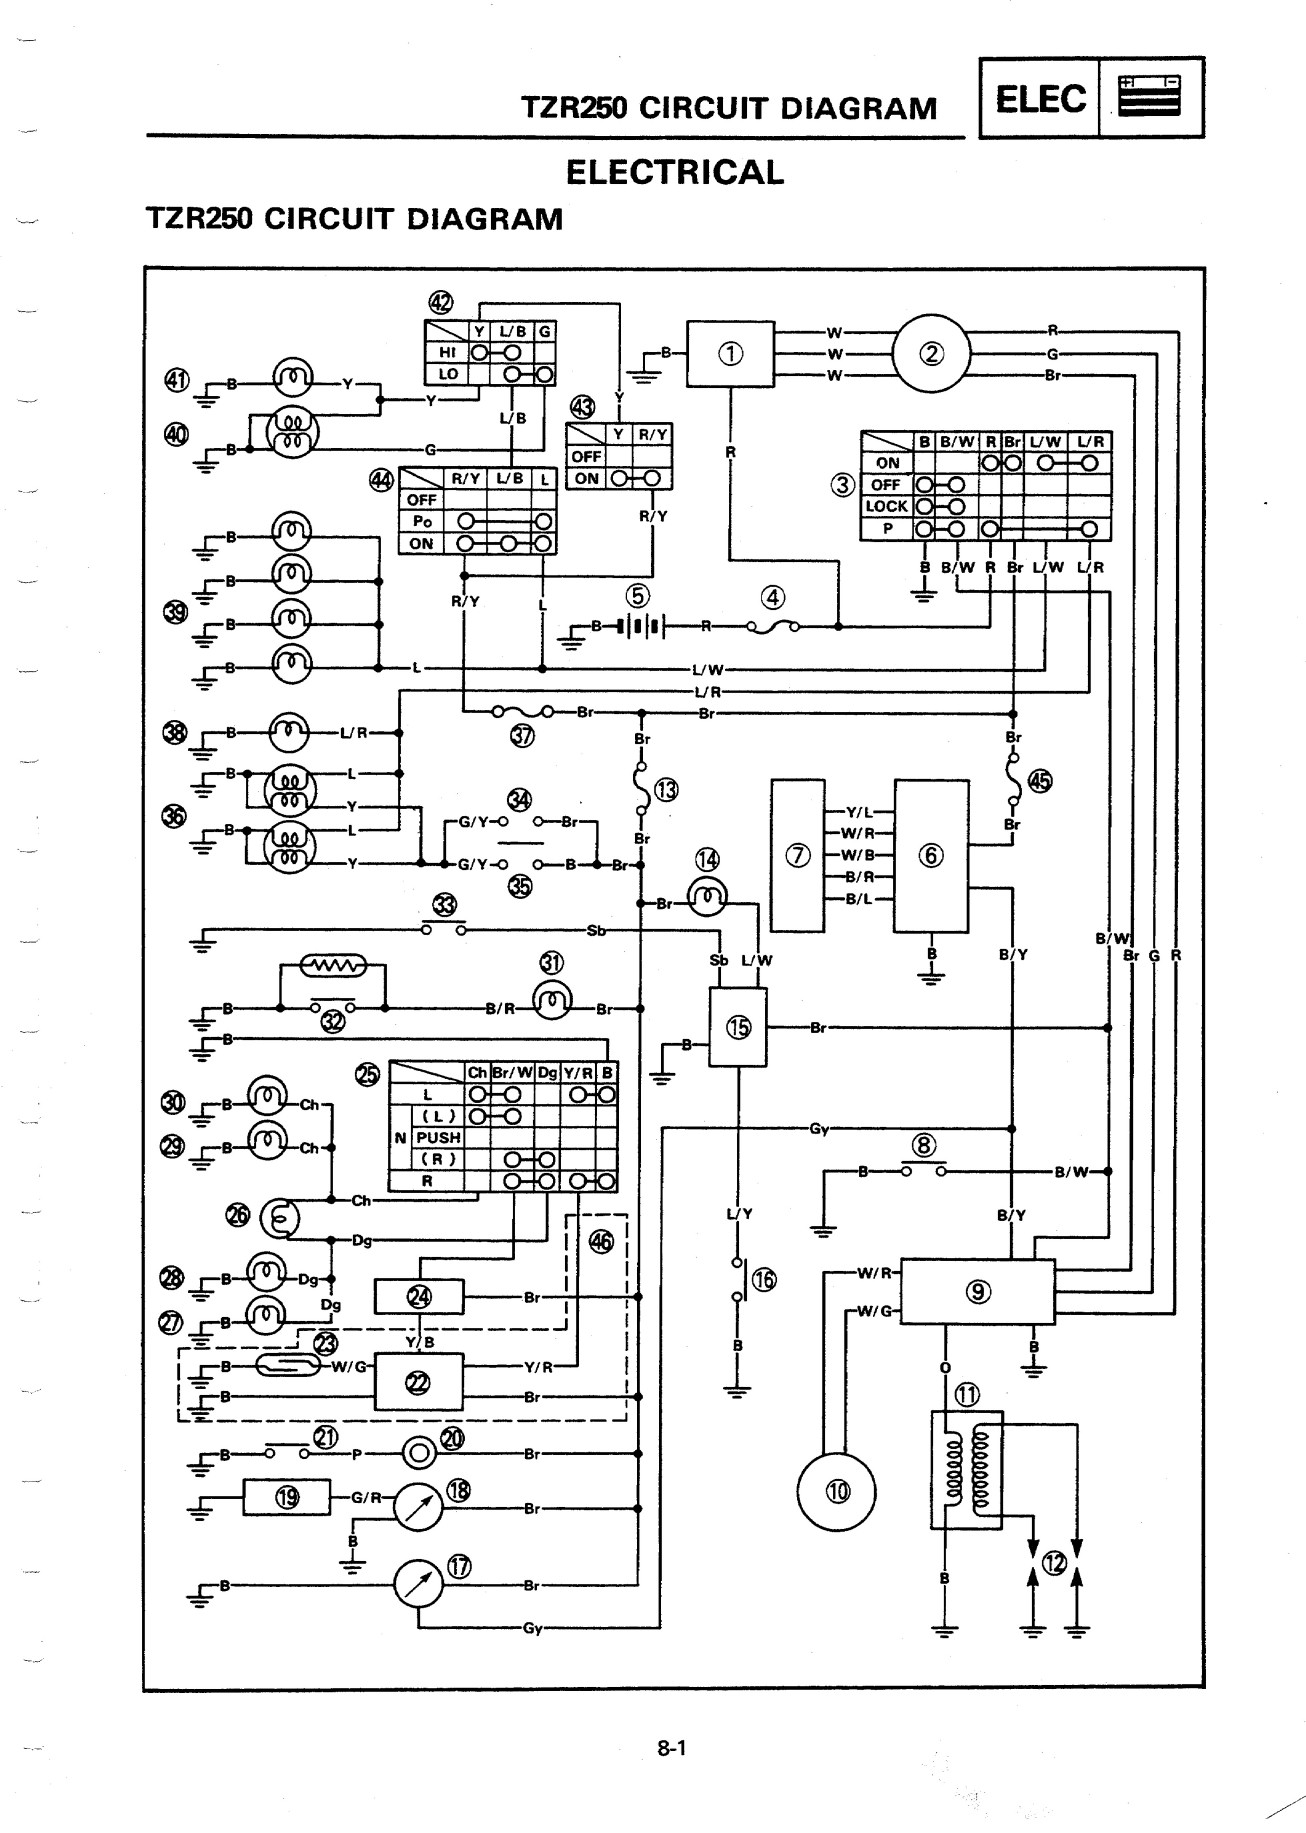 tzr250_01 tzr v4 electrics rd 250 wiring diagram at bayanpartner.co